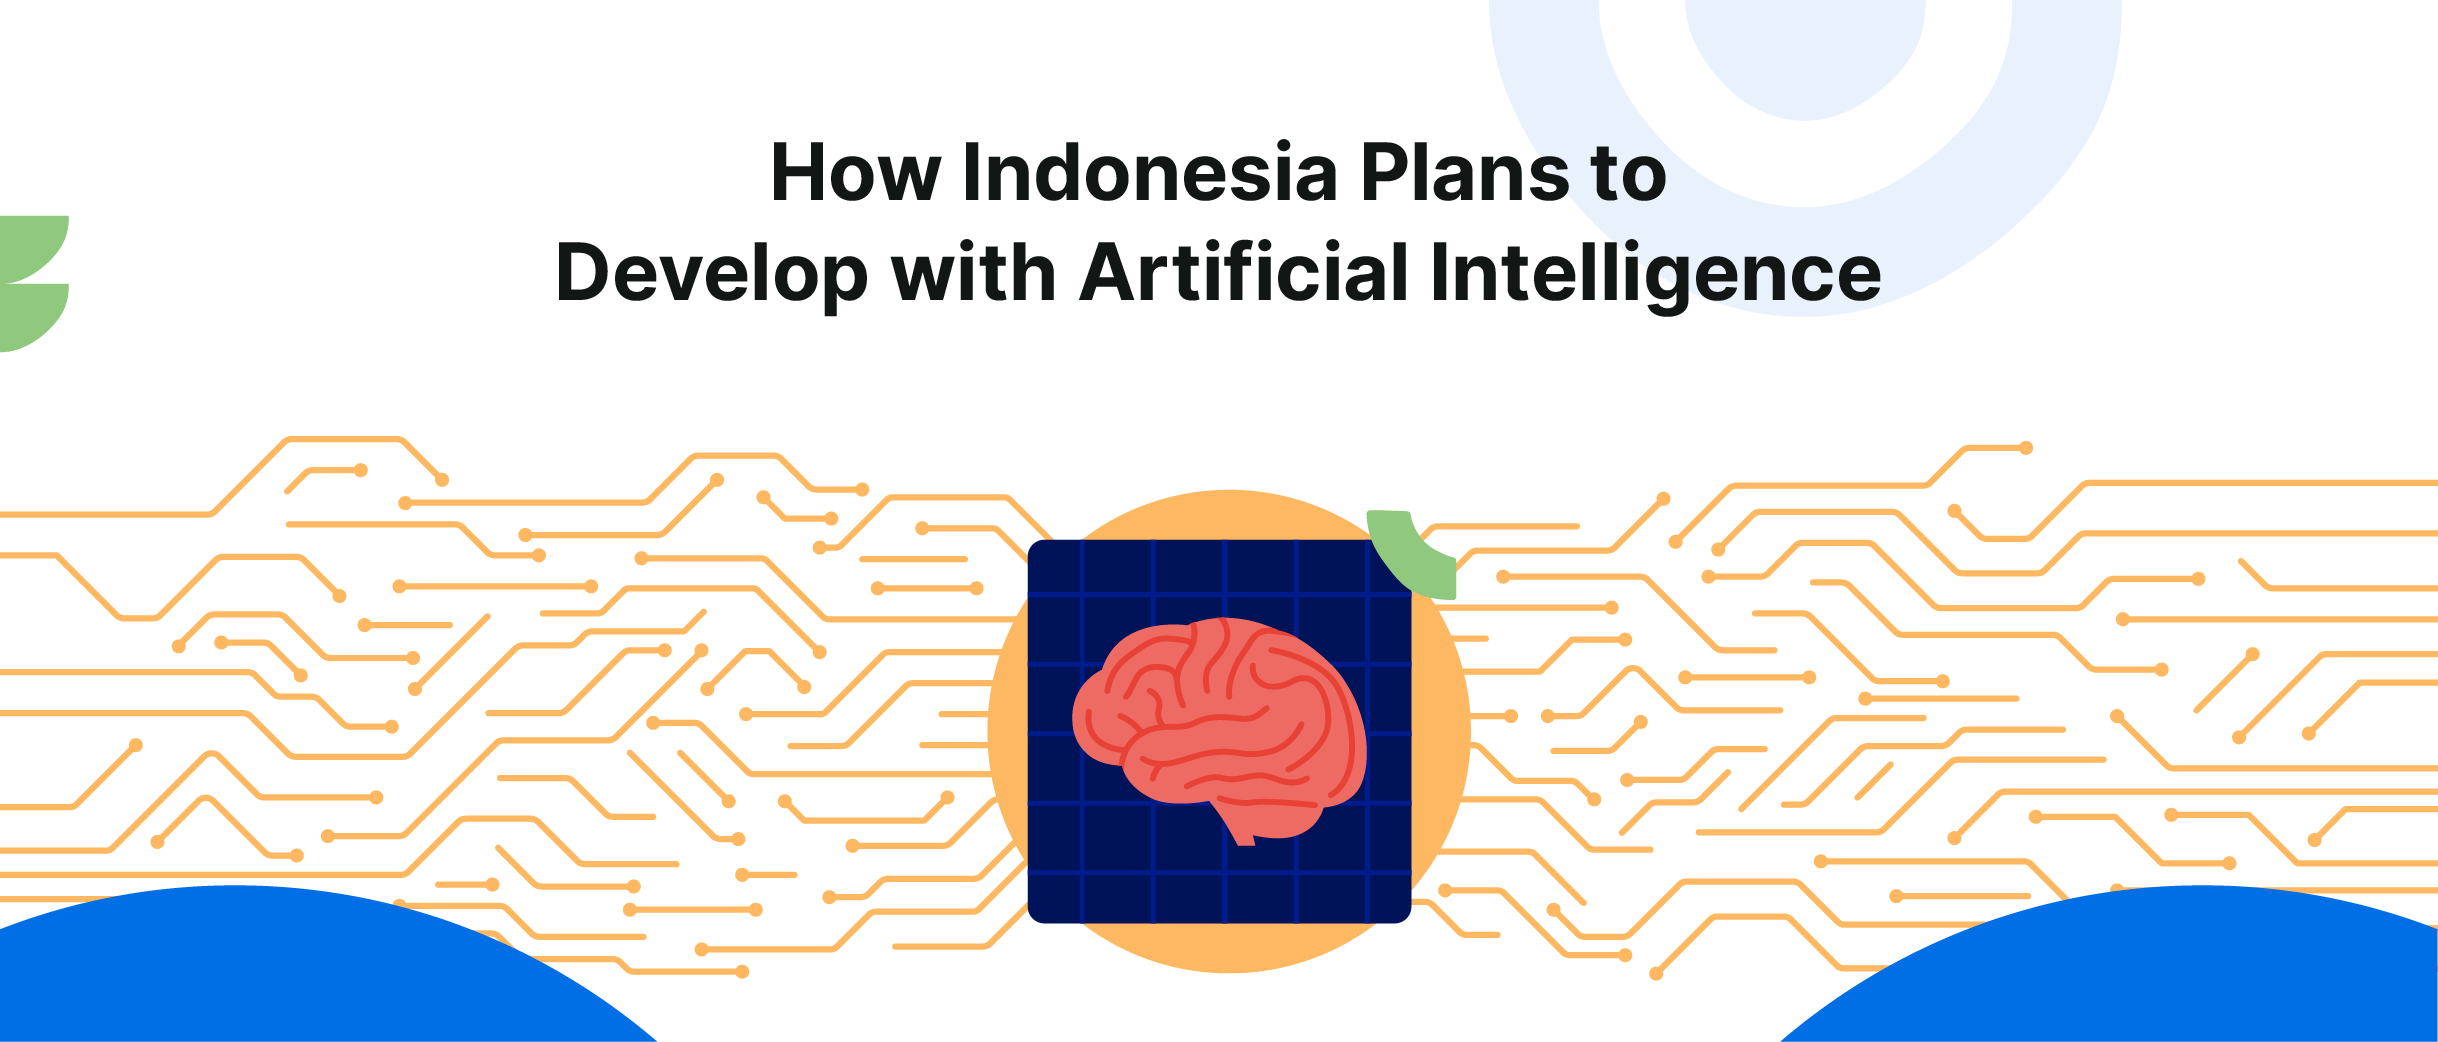 How Indonesia Plans to Develop with Artificial Intelligence